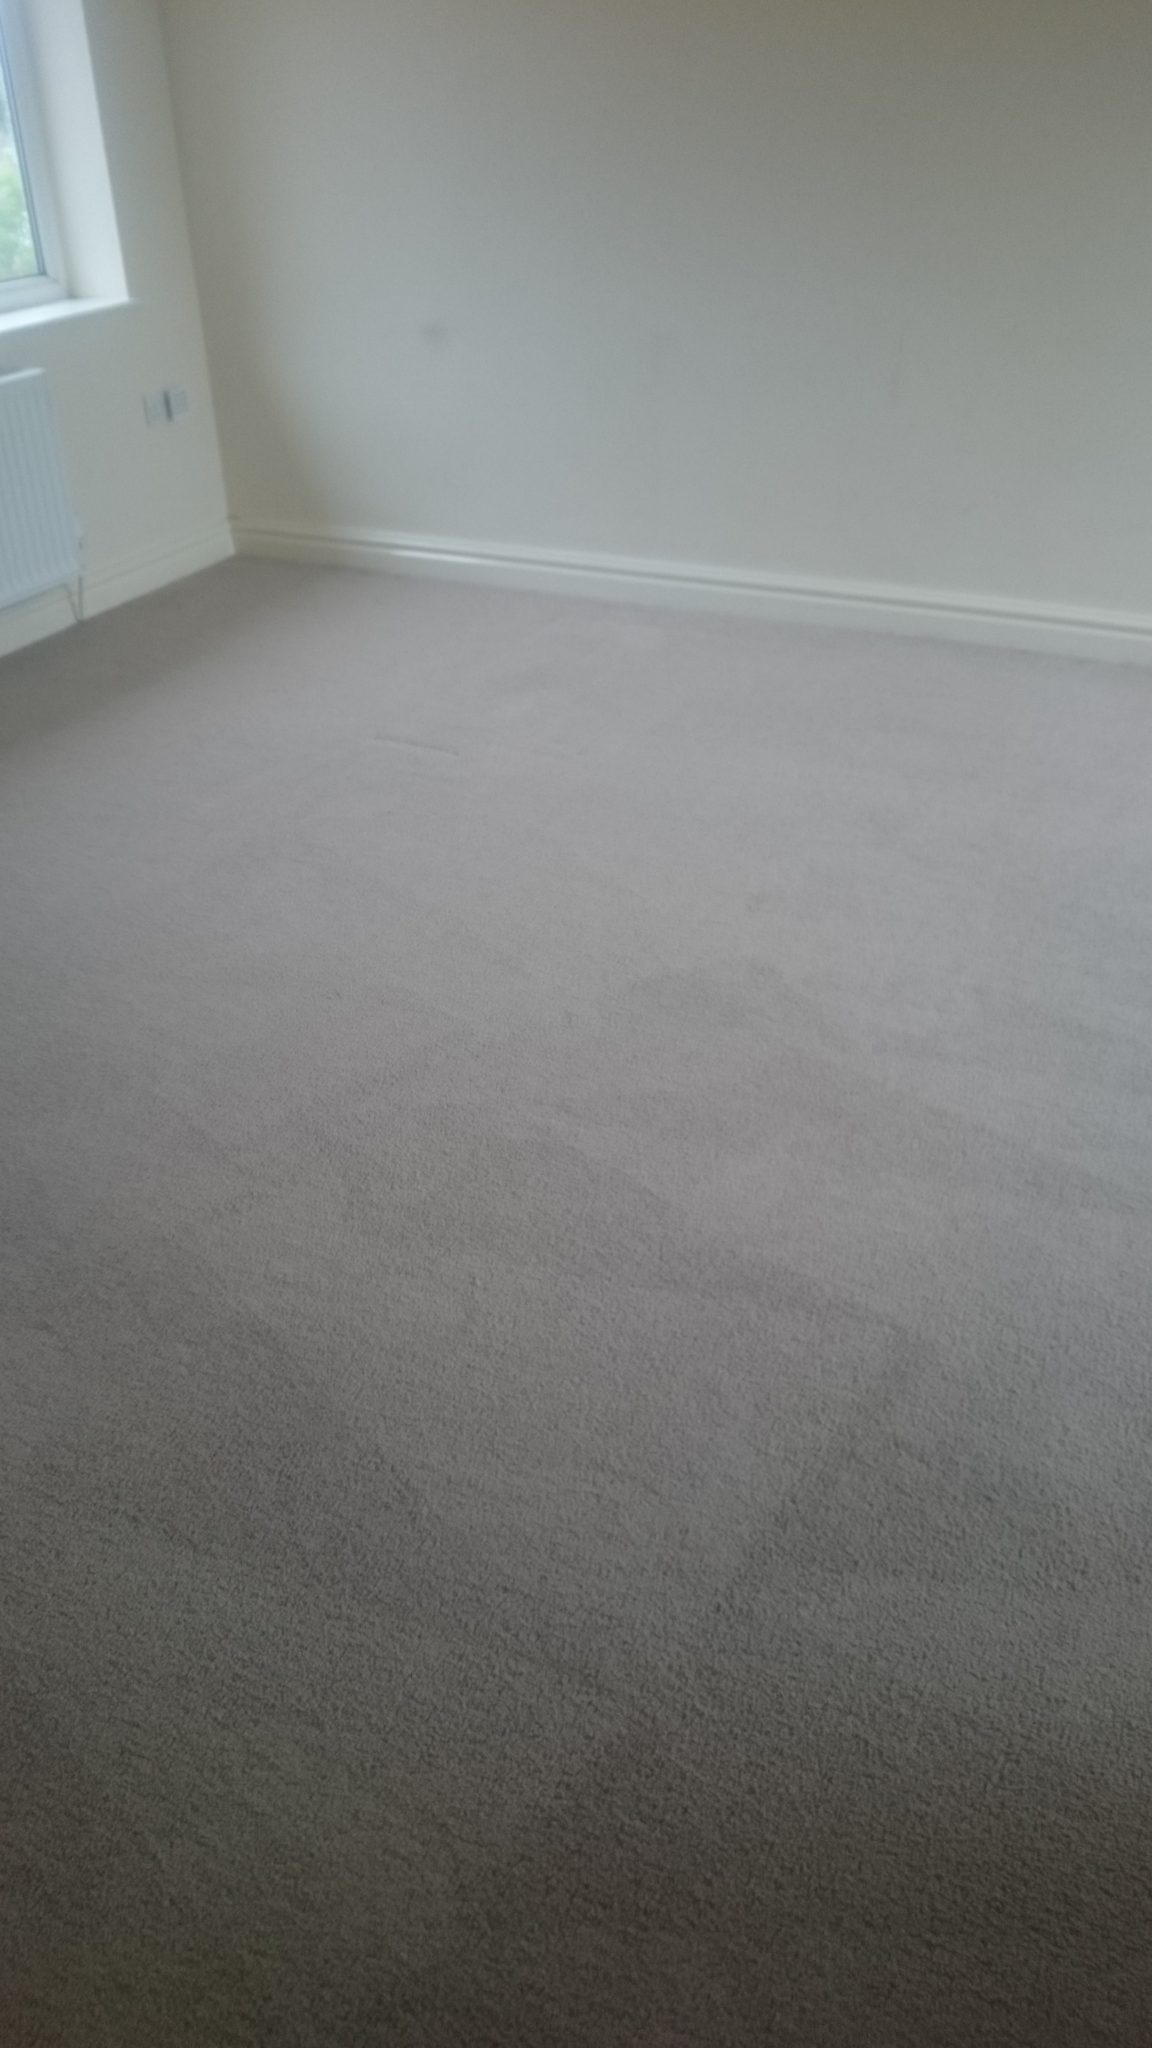 Low Moisture Lounge Carpet Clean